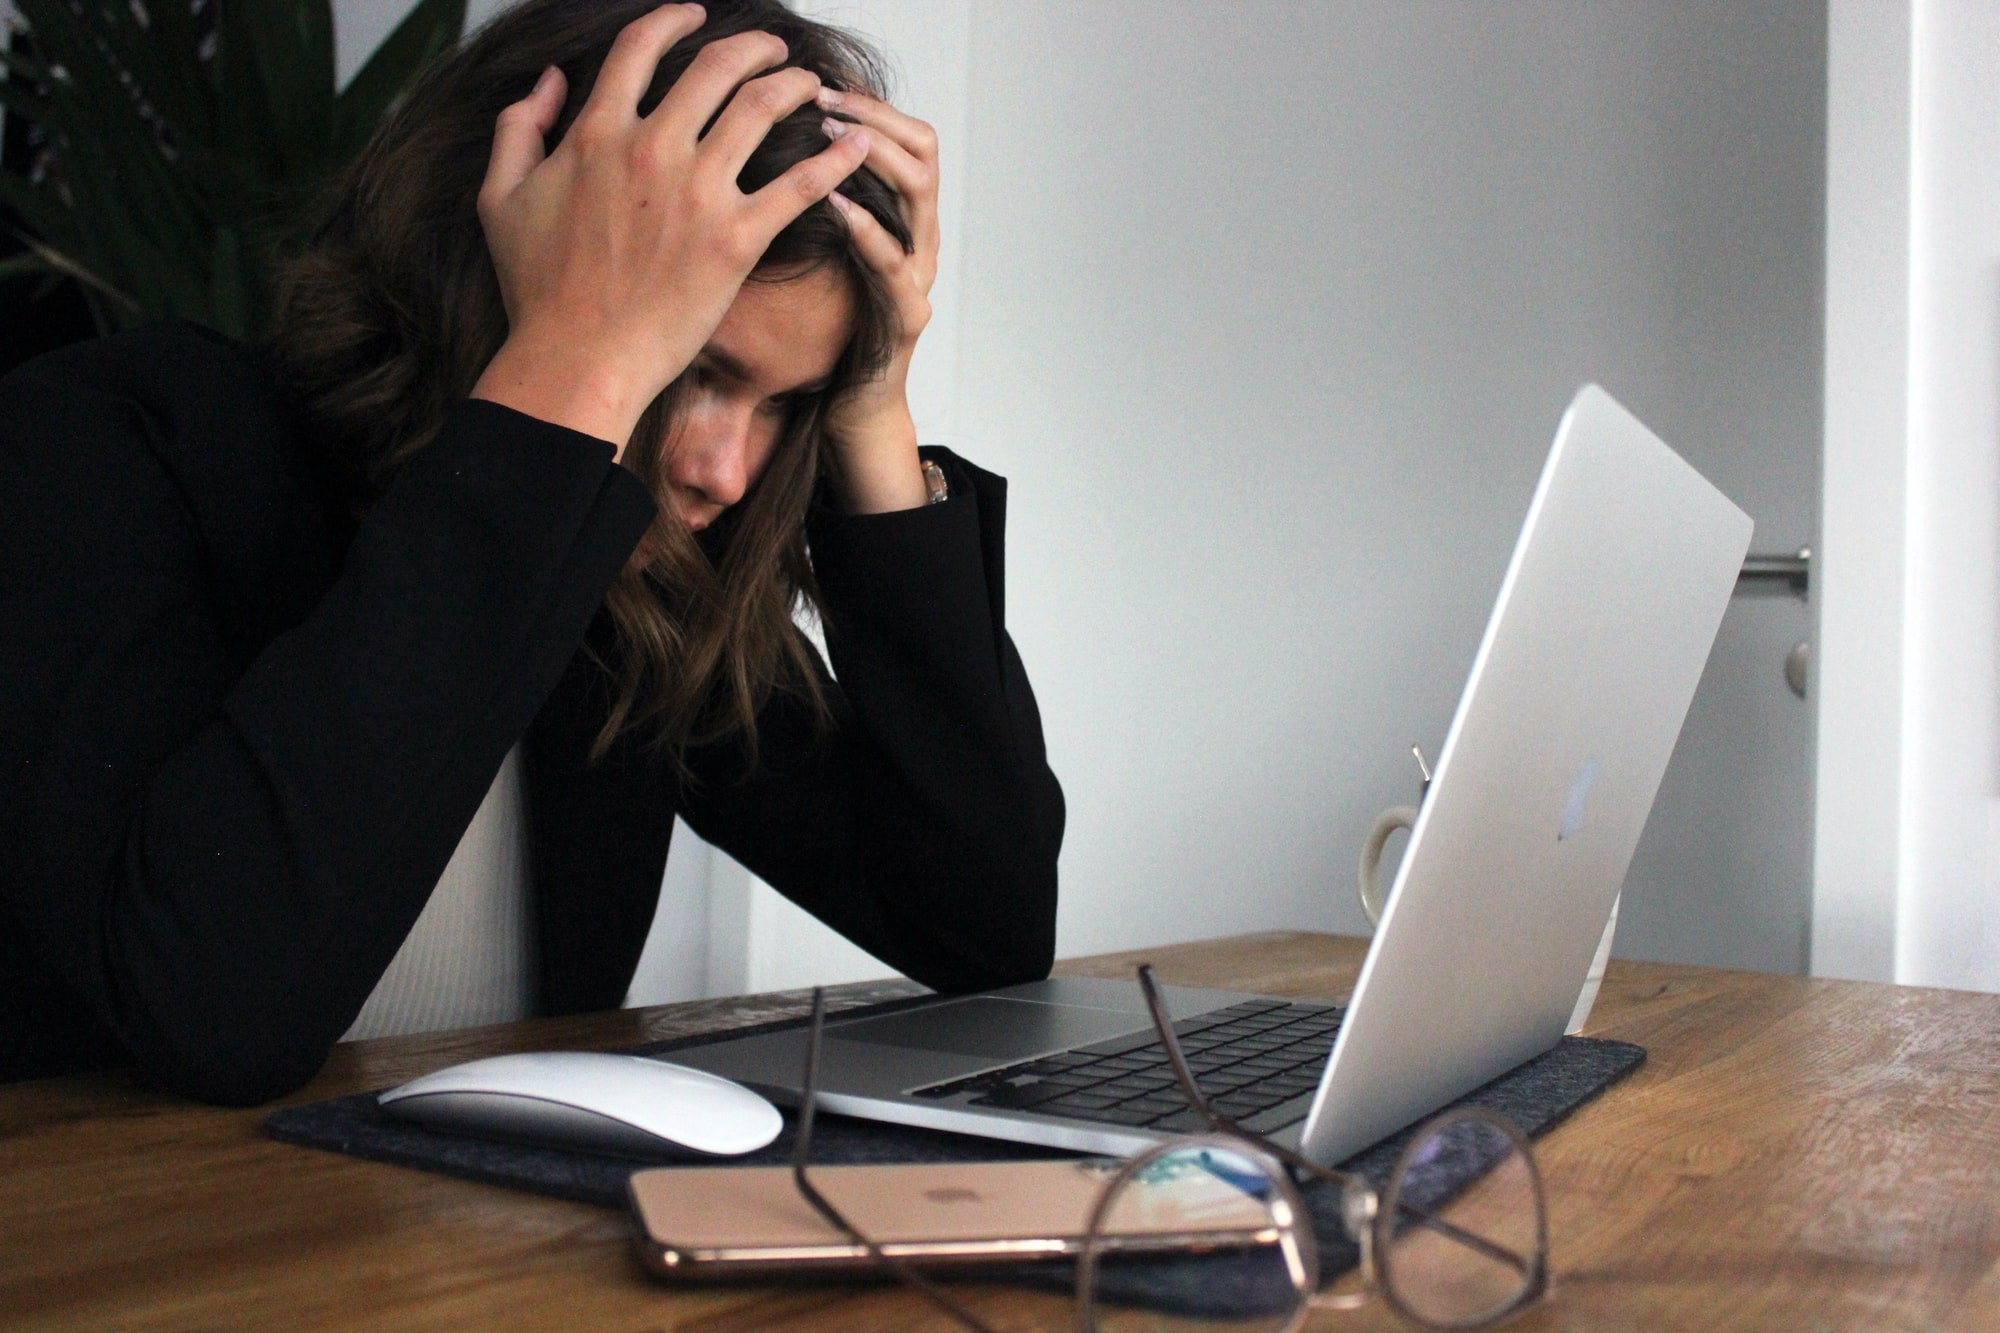 a business woman who is stressed and frustrated